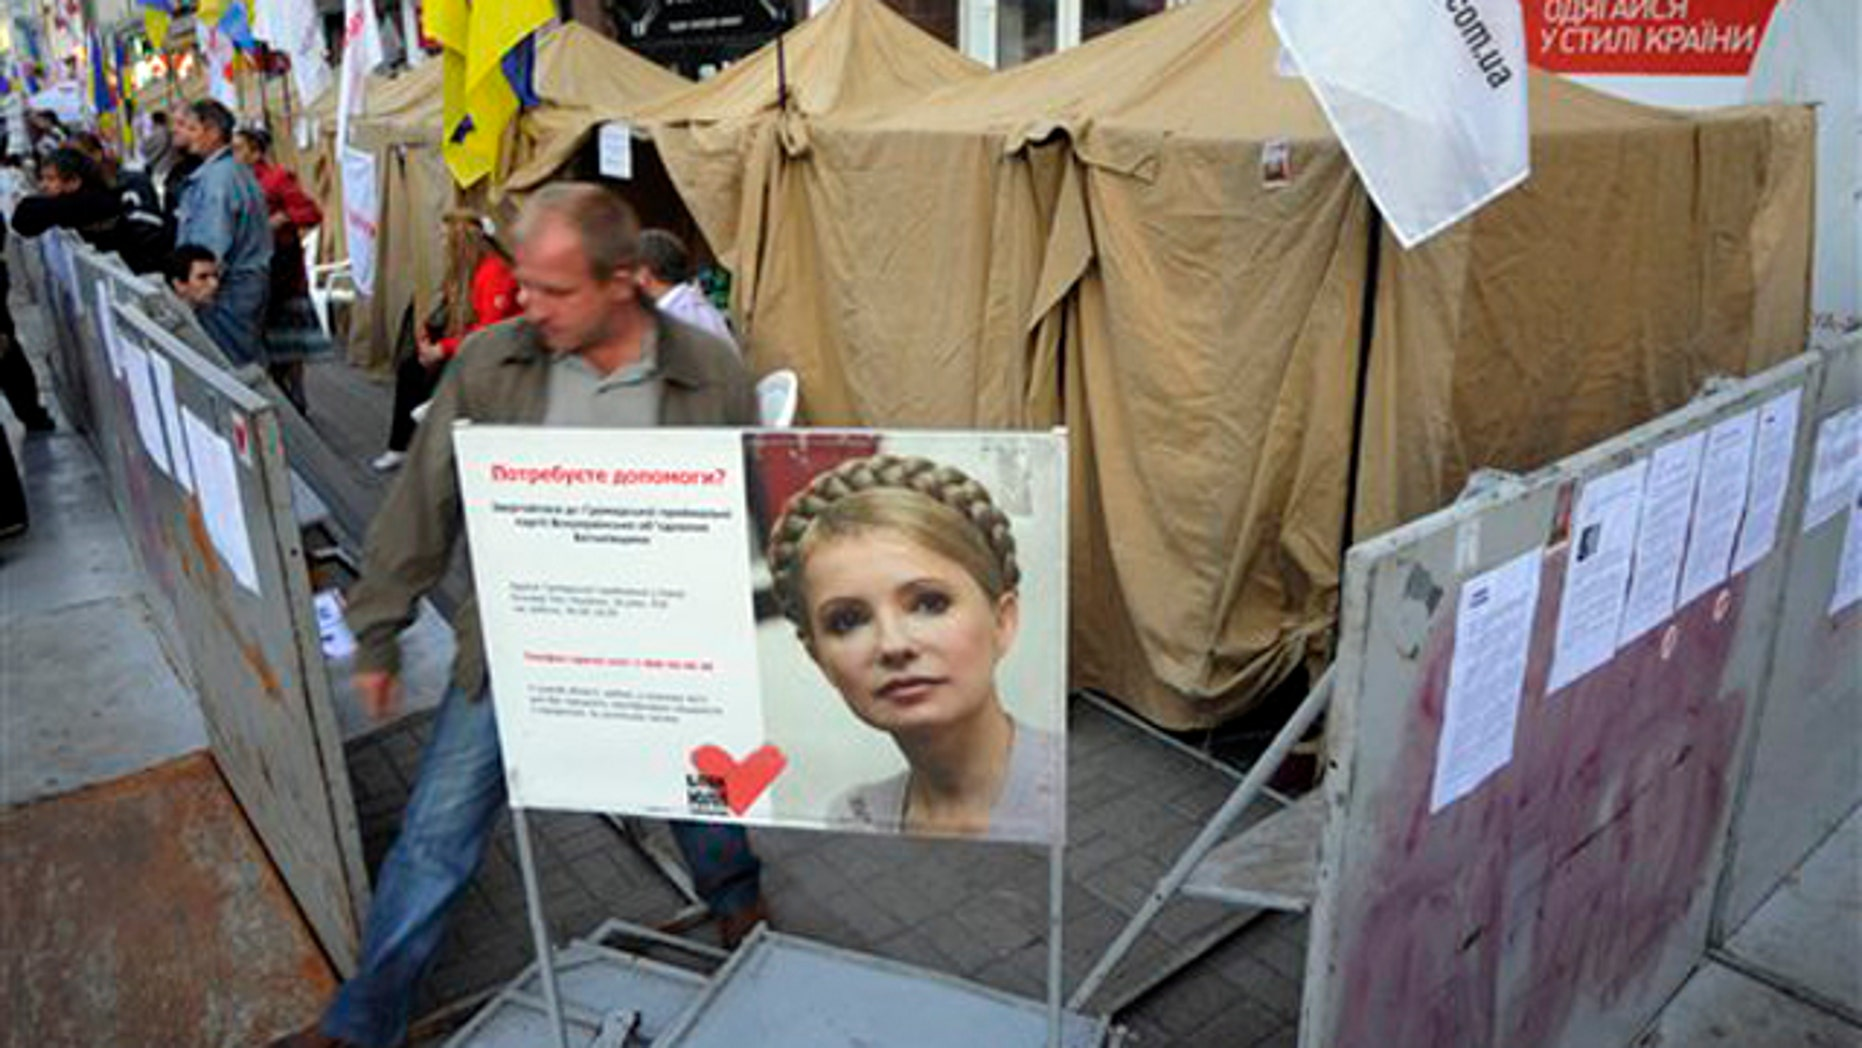 A tent camp in support of former Ukrainian Prime Minister Yulia Tymoshenko outside the Pecherskiy District Court building in central Kiev, Monday, Aug. 8, 2011.